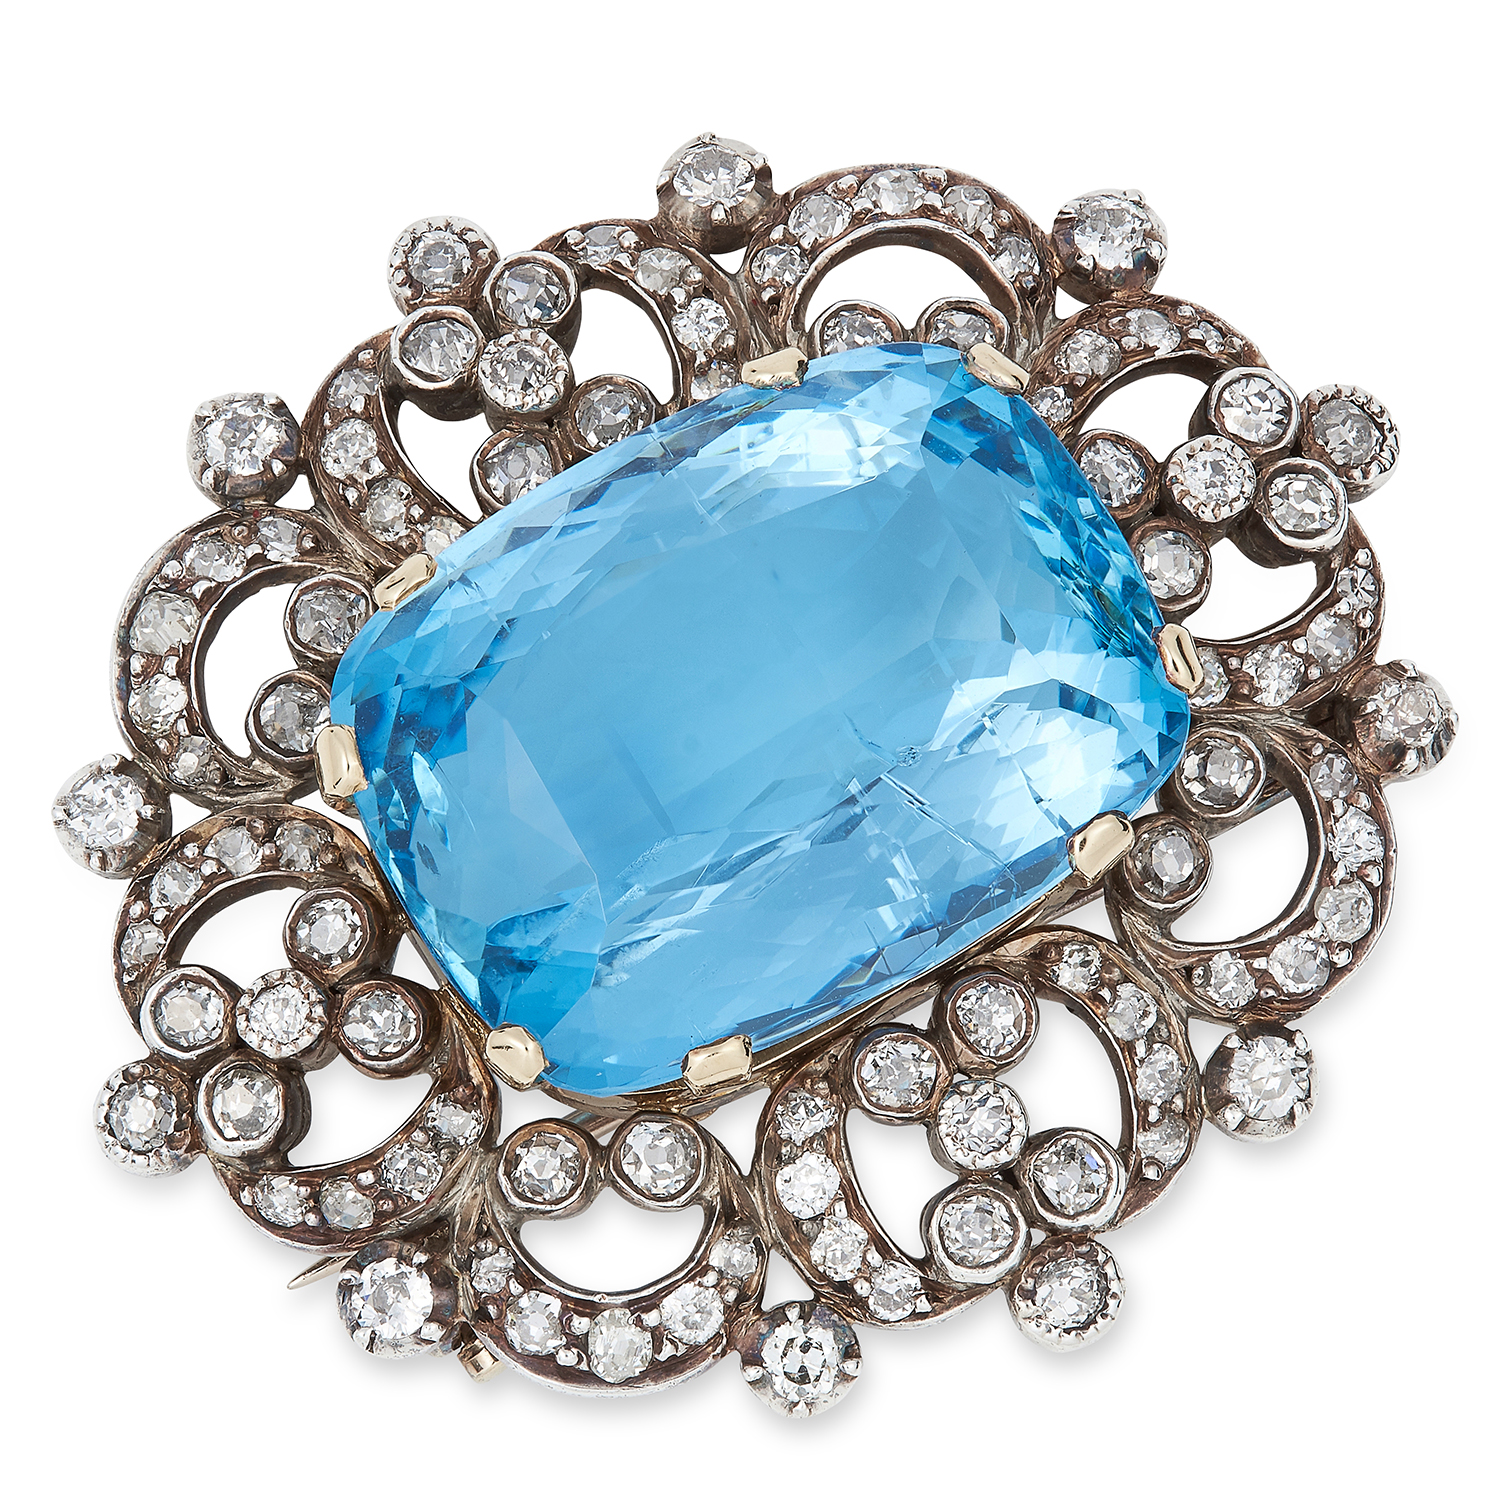 Los 1 - AQUAMARINE AND DIAMOND BROOCH set with an oval cushion cut aquamarine of approximately 30 carats